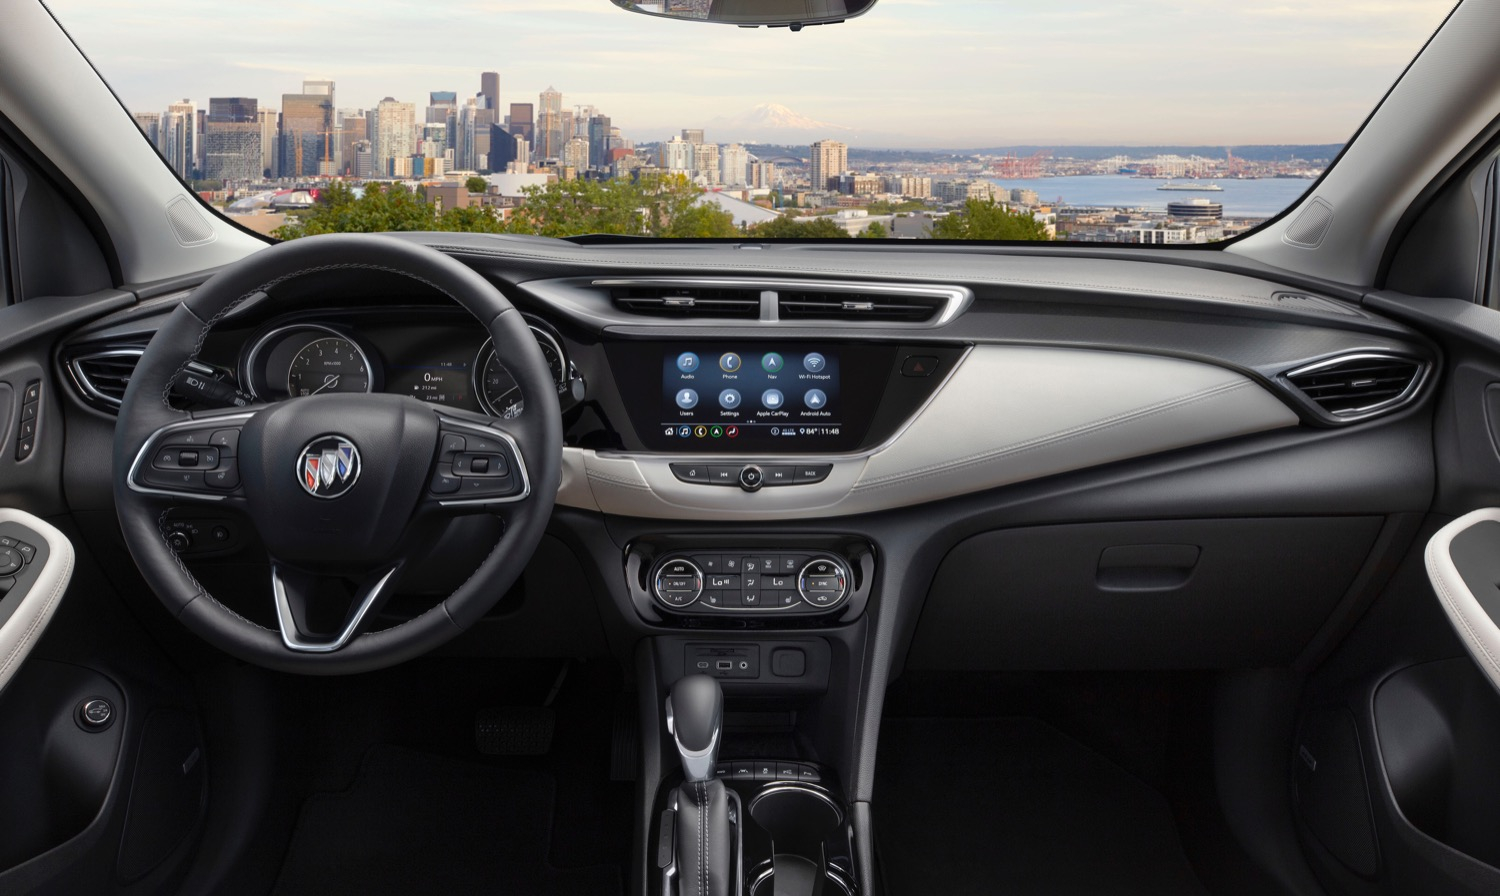 2021 Buick Encore Gx Interior Colors | Gm Authority 2022 Buick Encore Release Date, Specifications, Exterior Colors